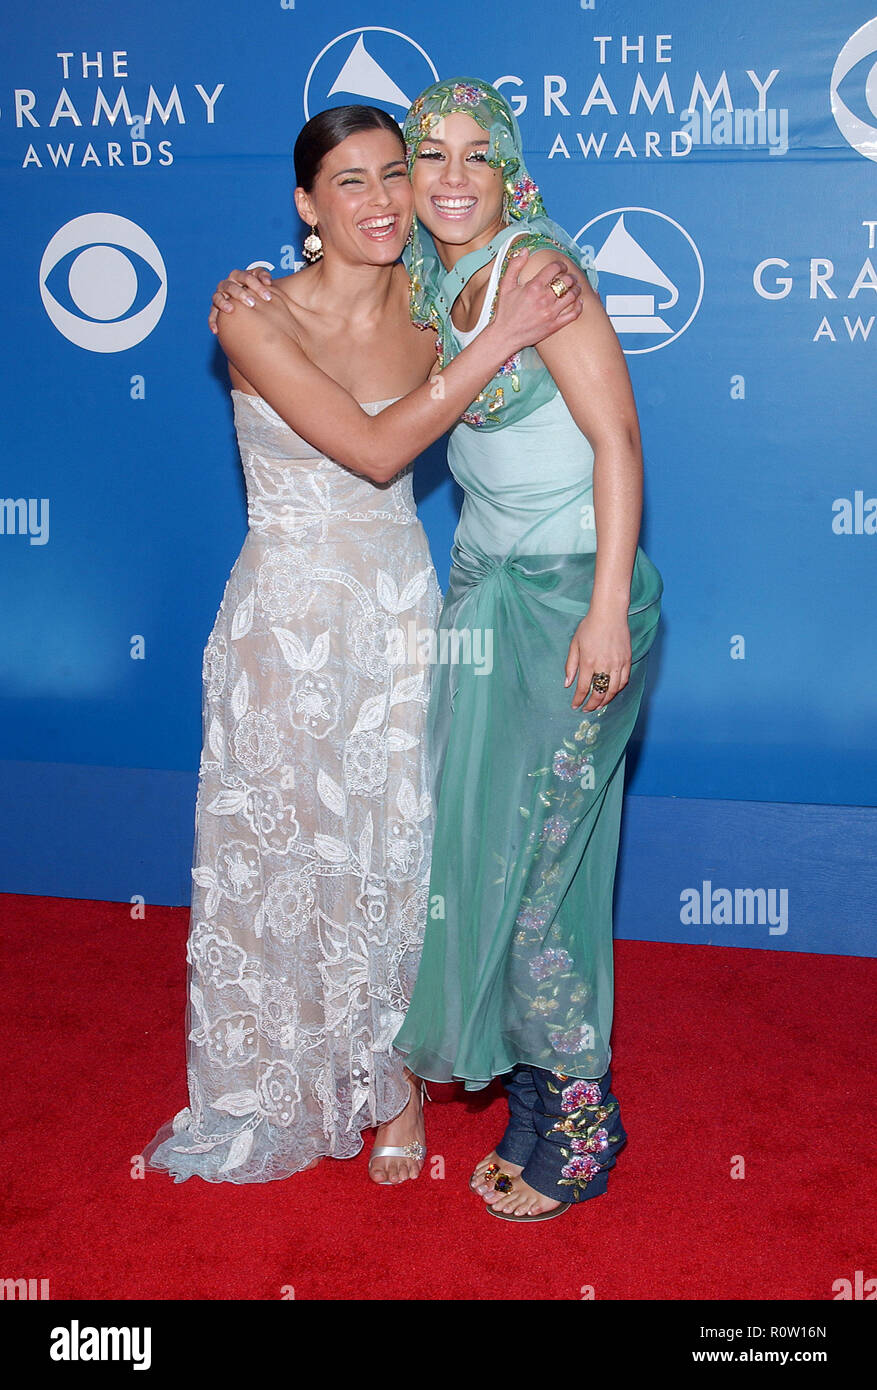 Nelly Furtado and Alicia Keys          -            DSC_1148.JPGDSC_1148  Event in Hollywood Life - California, Red Carpet Event, USA, Film Industry,  - Stock Image